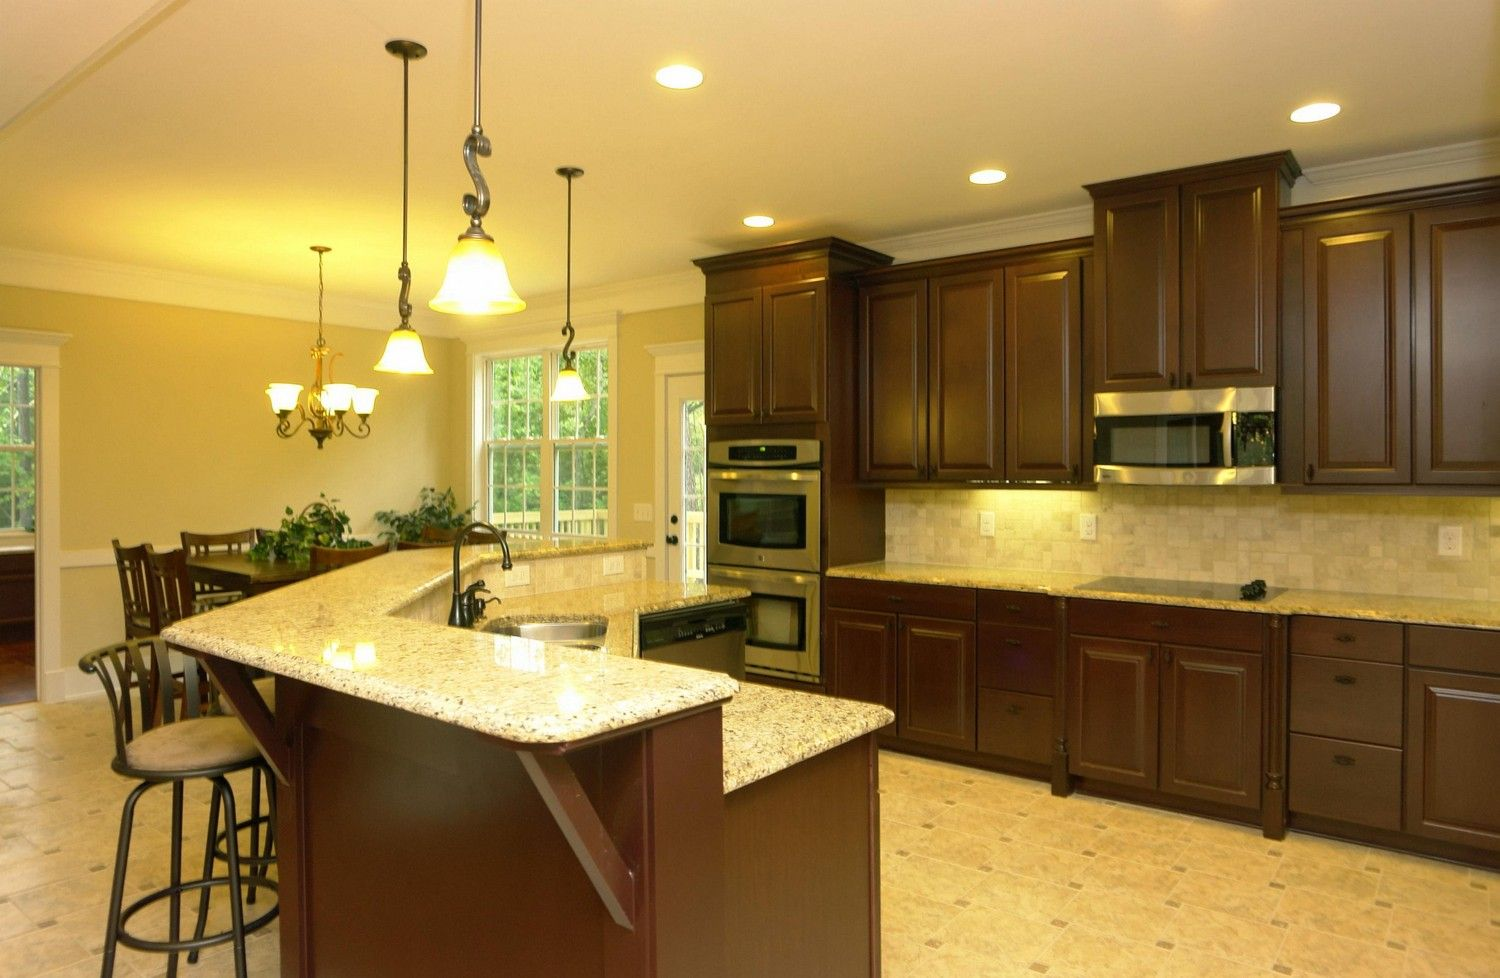 Double wall ovens. Electric cooktop. Island kitchen with raised ...